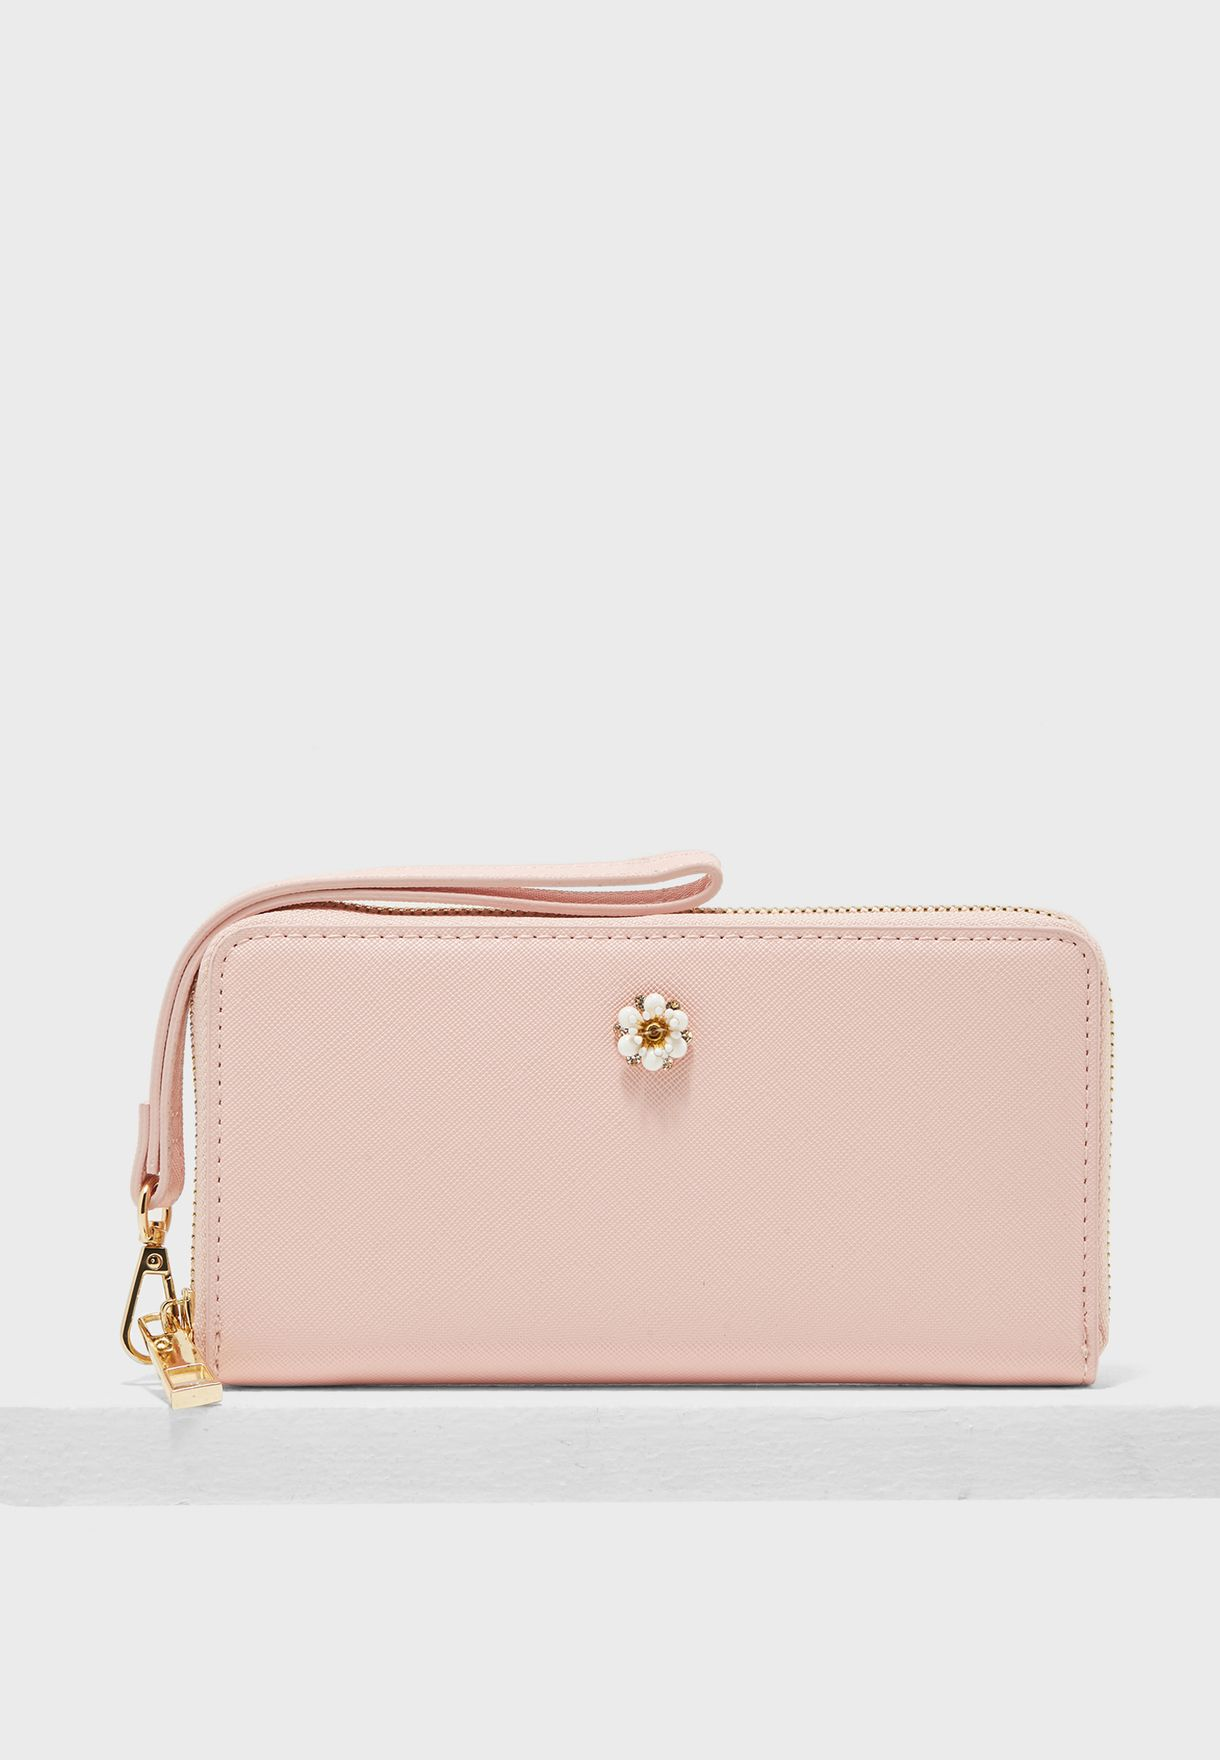 ba358dc3bfbc Shop Aldo pink Zip Around Purse PAVOT55 for Women in Saudi ...